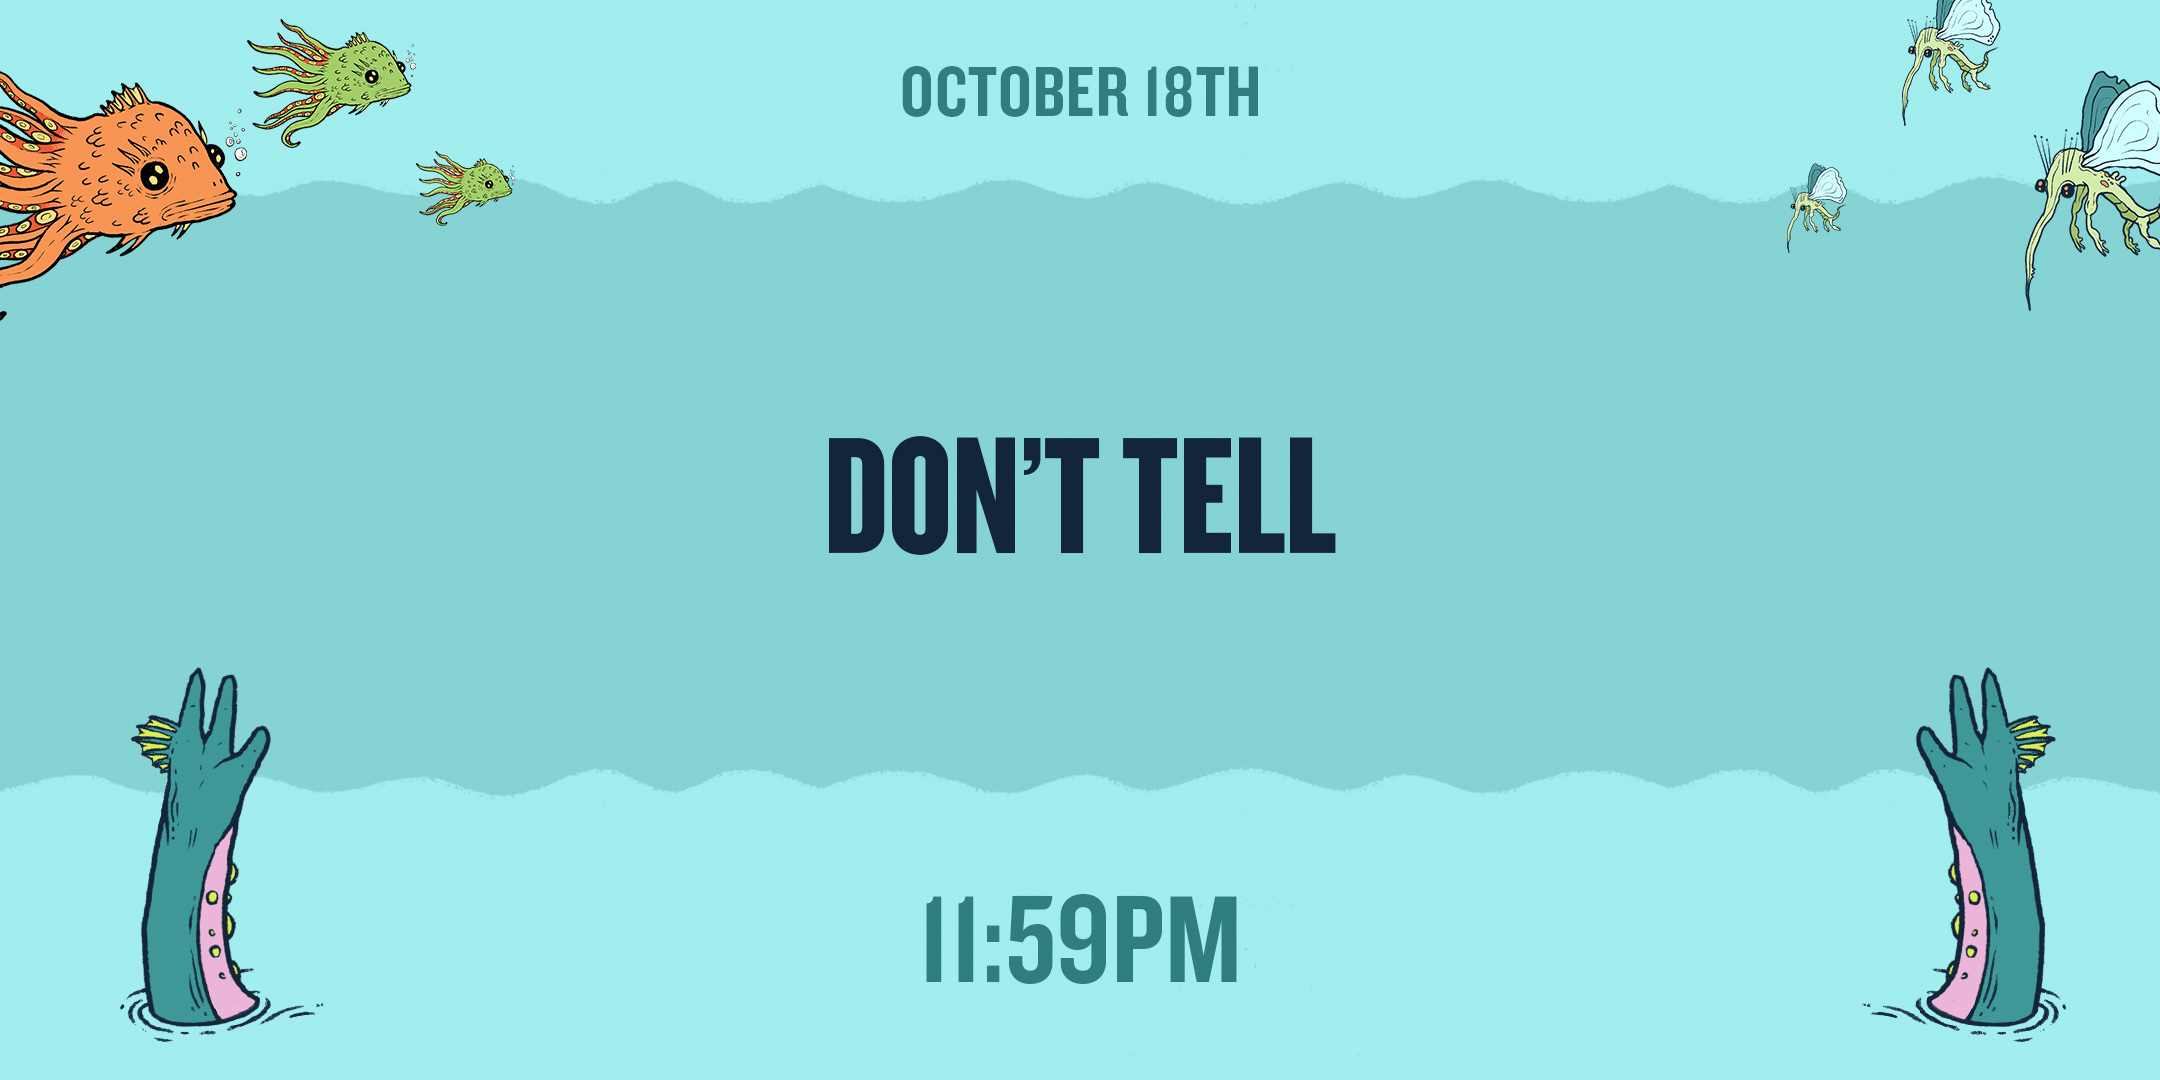 OCT18-Don't Tell.jpg